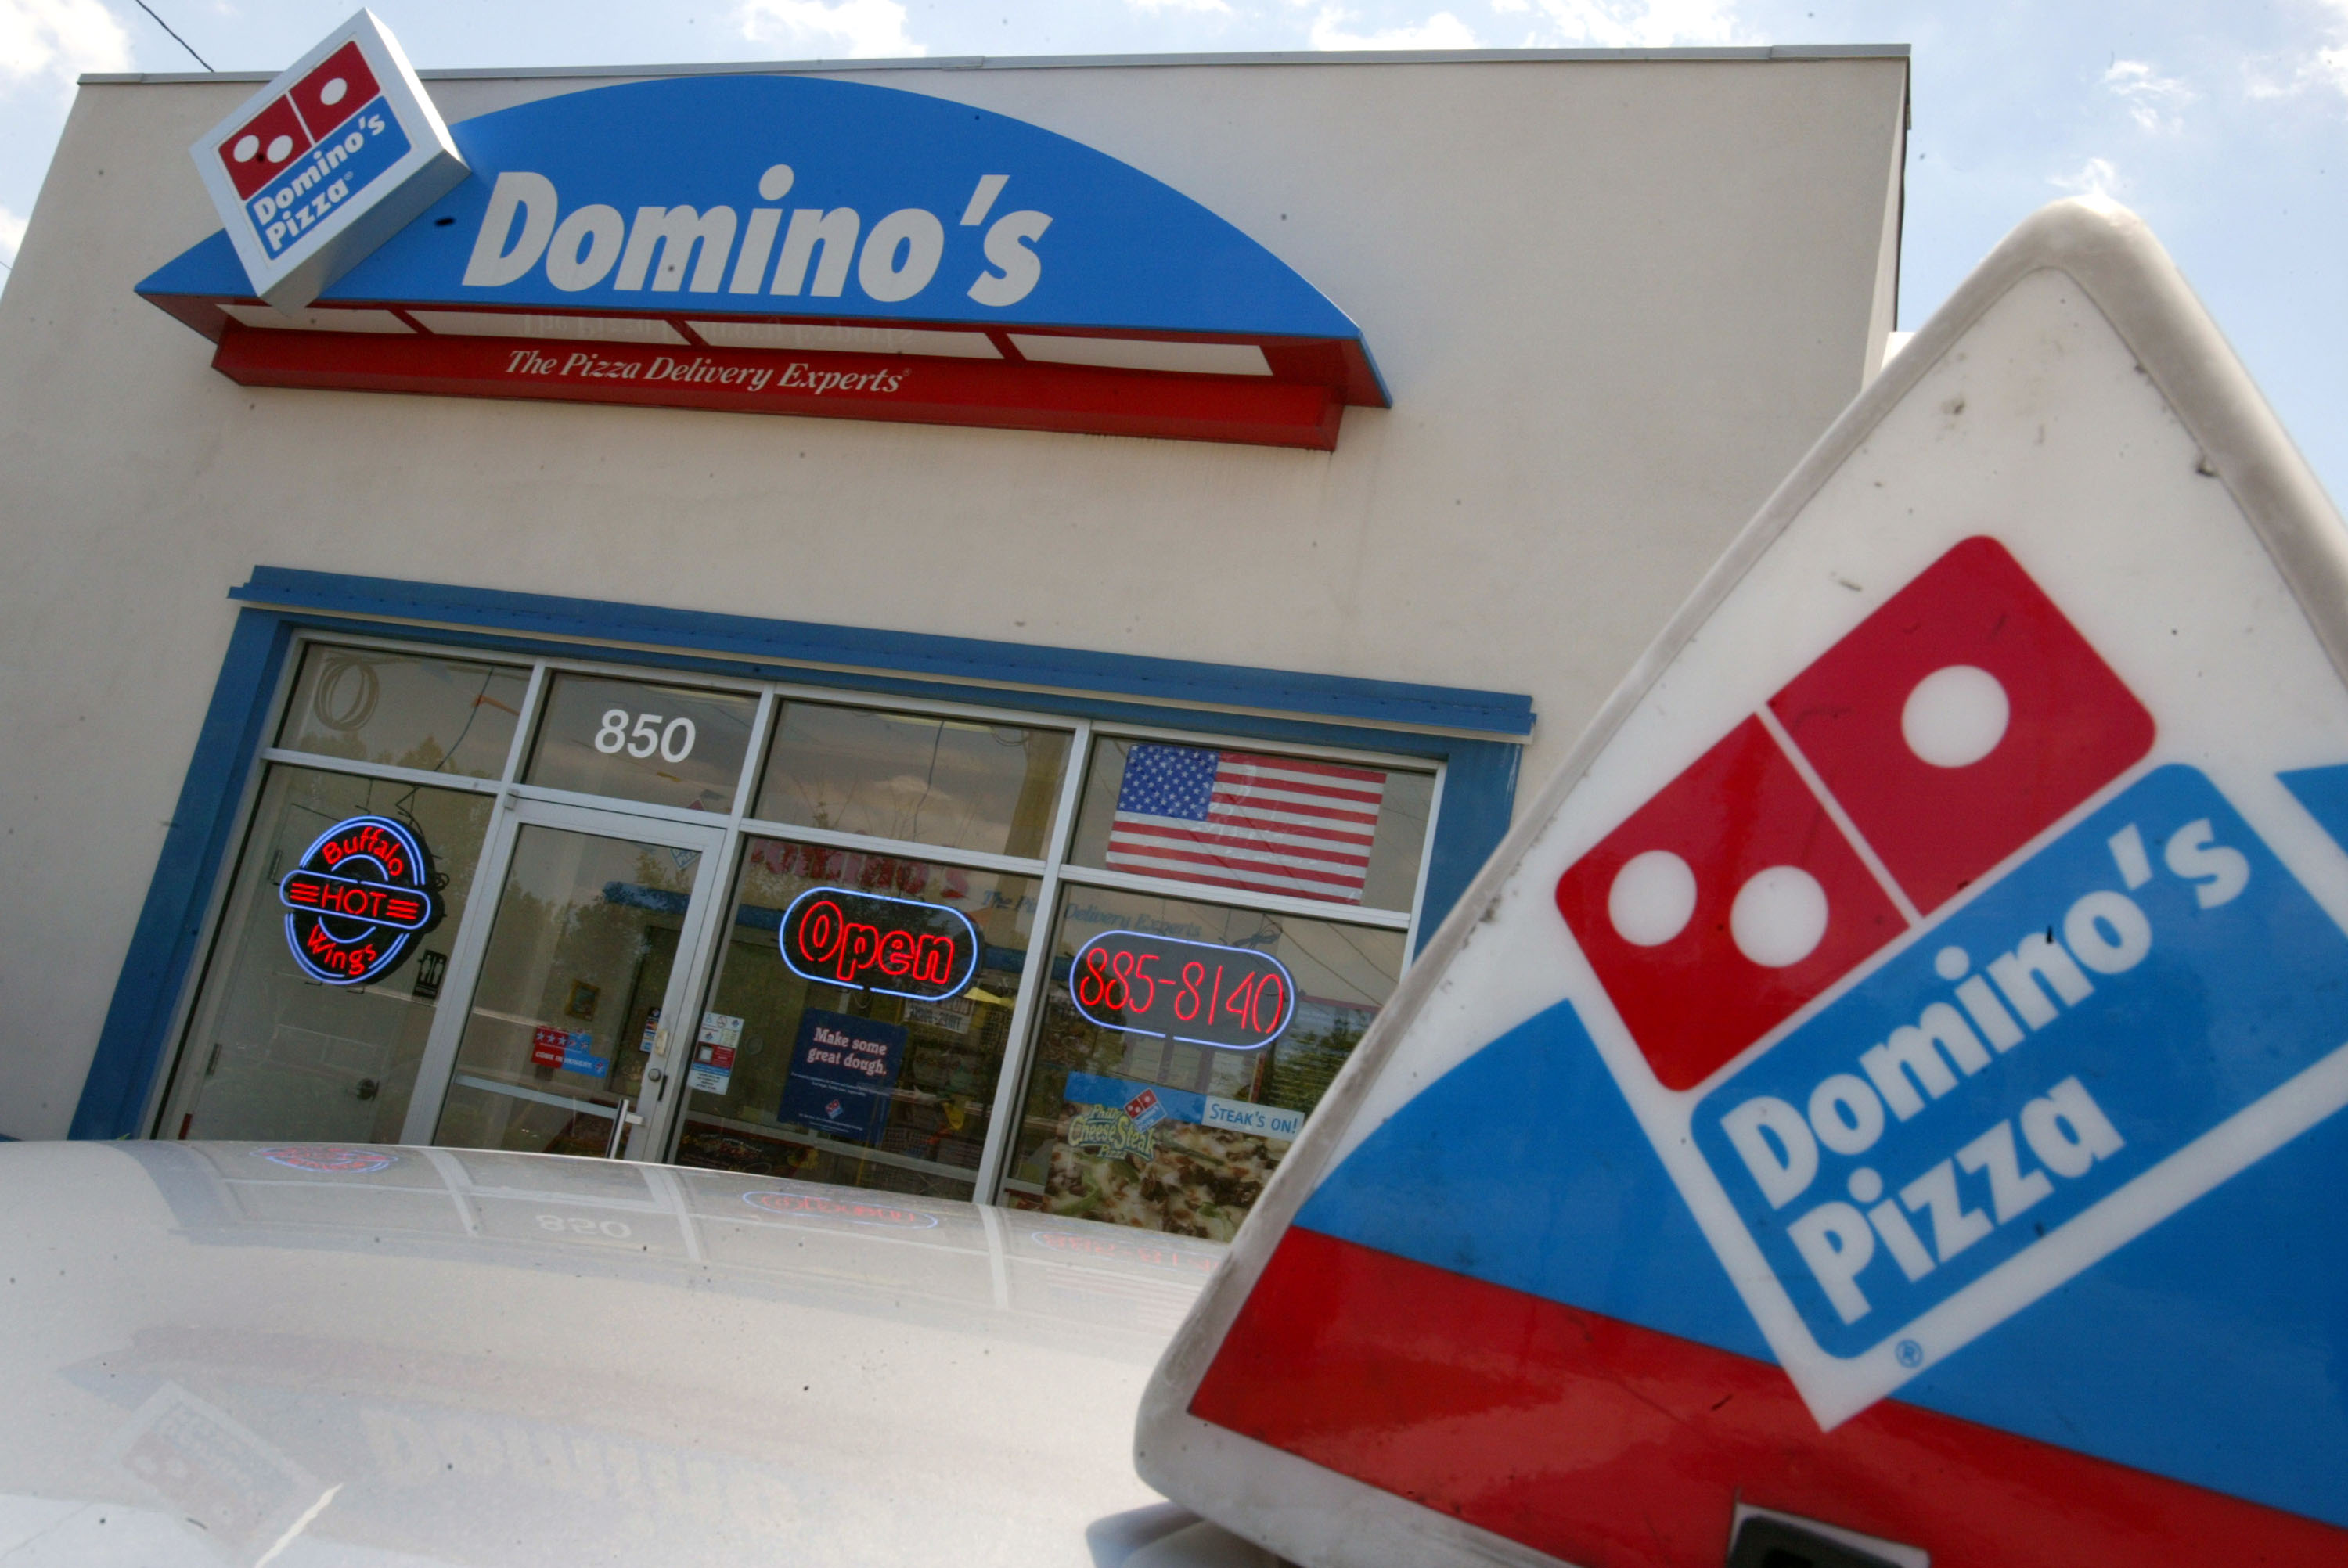 A mid-2000s Domino's sign on a blue curved awning on a white building with blue framed windows. In the foreground there's a Domino's delivery car with a triangular Domino's sign on top.